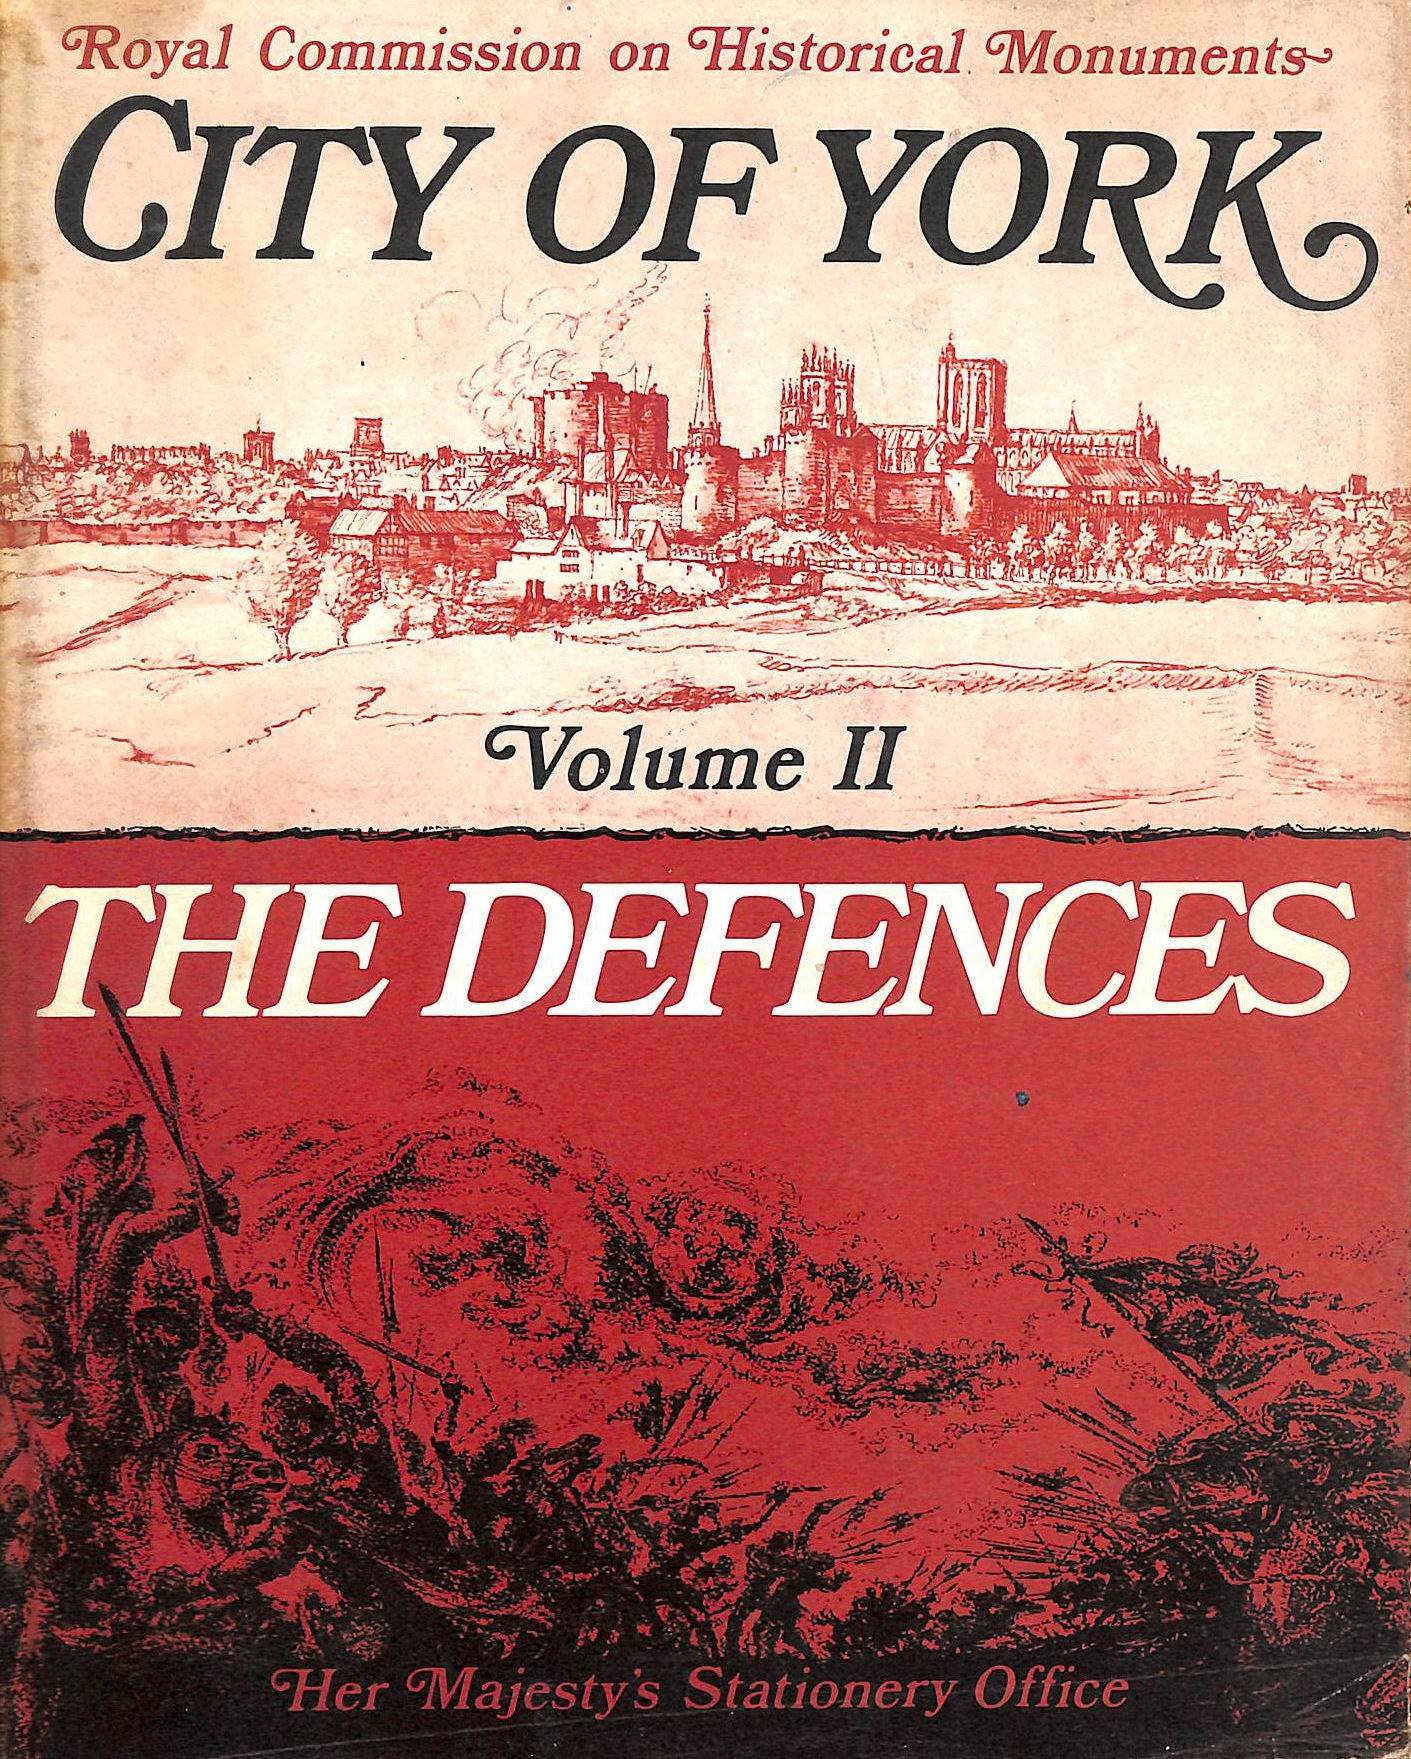 Image for Inventory of the Historical Monuments in the City of York: Volume 2 (II), The Defences